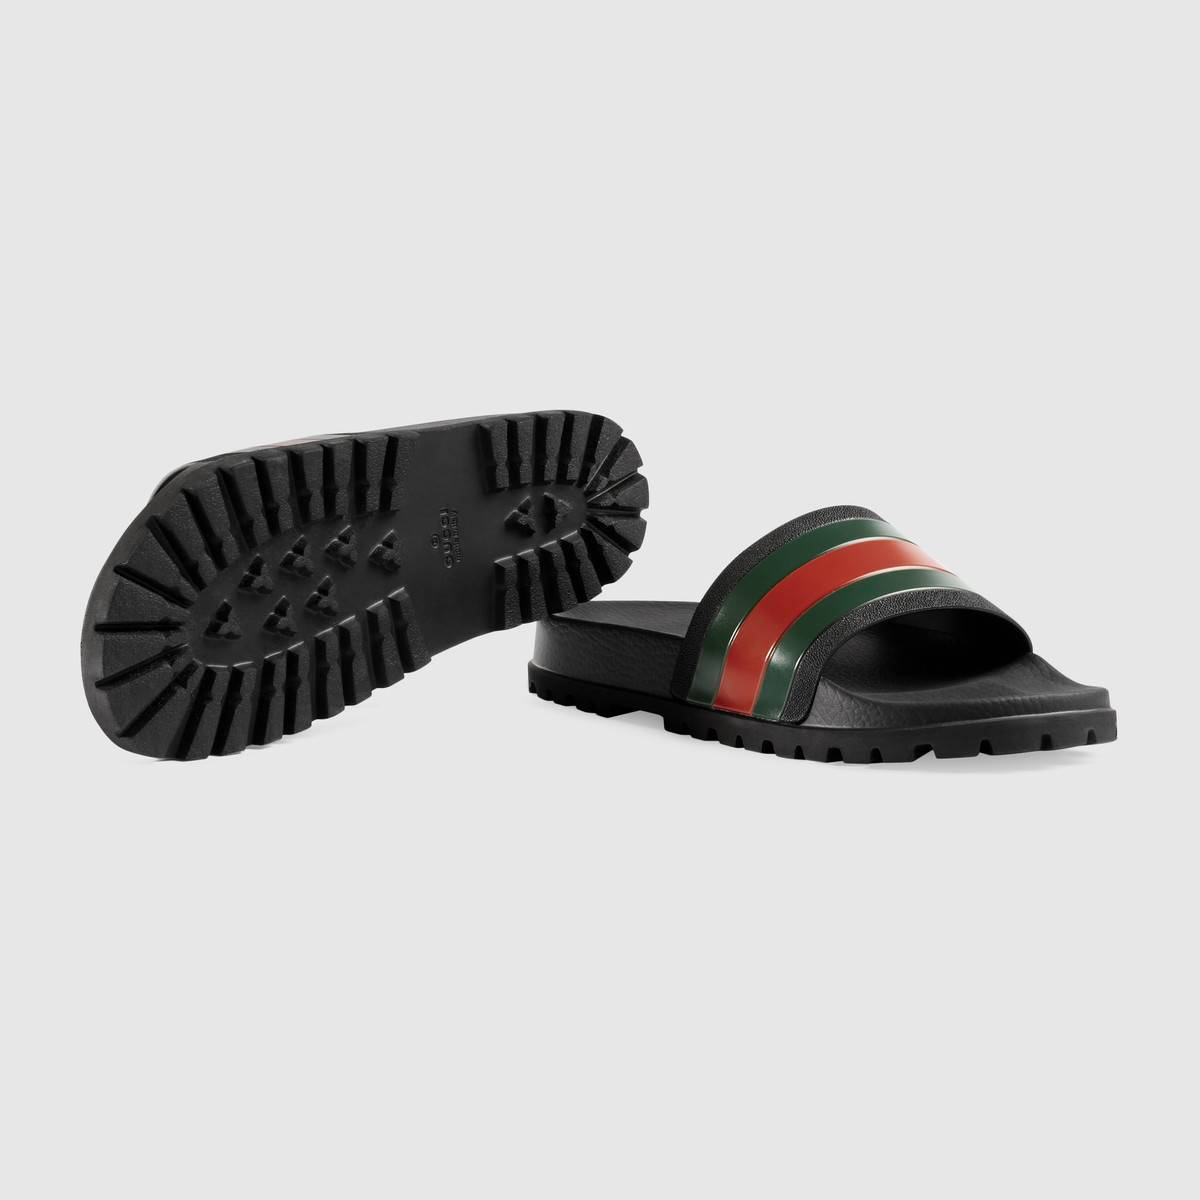 6f68d8e99 Men's Black Ru& Red Web slide sandal, Men's Fashion, Footwear ...